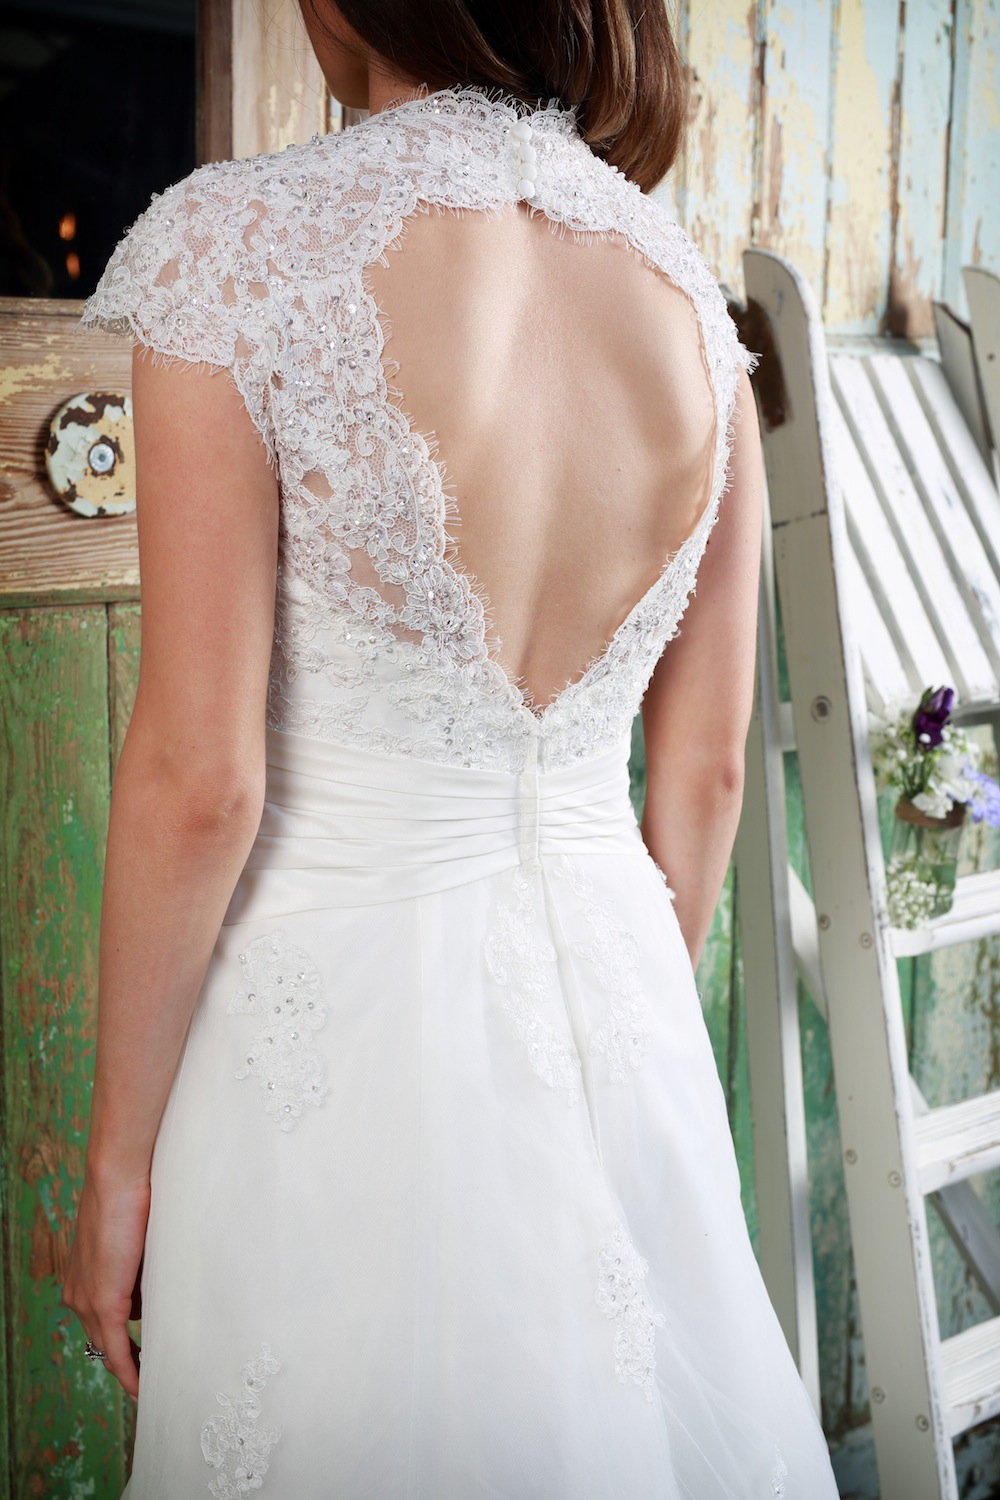 Amanda Wyatt Wedding Gown : Matilda - sweetheart necklace lace gown in fine tulle with guipure lace trim. A pleated satin band helps define a brides waistline down to the A-line skirt with a keyhole back.